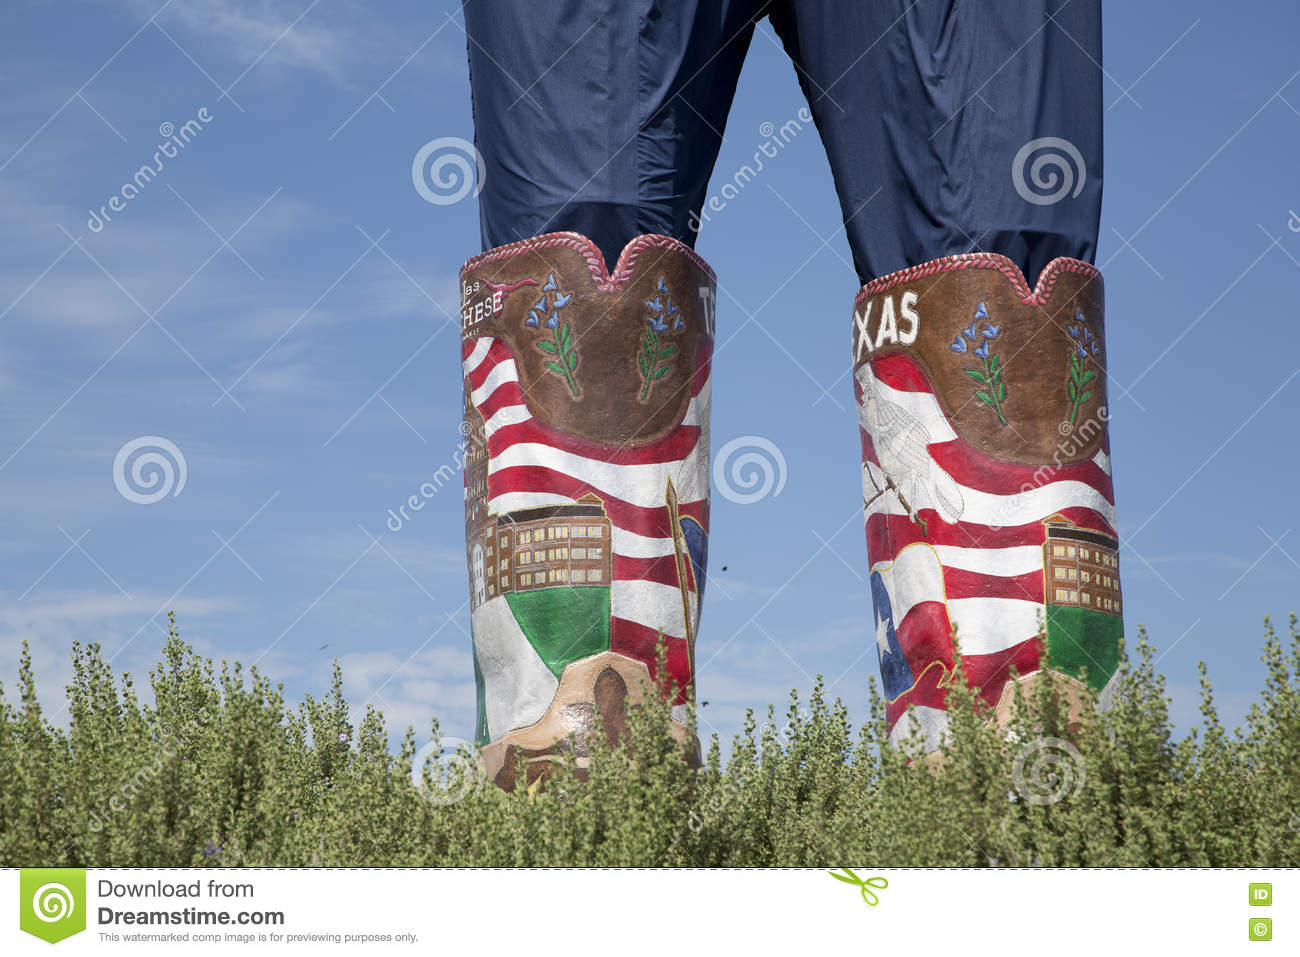 Big Tex boots at State Fair of Texas